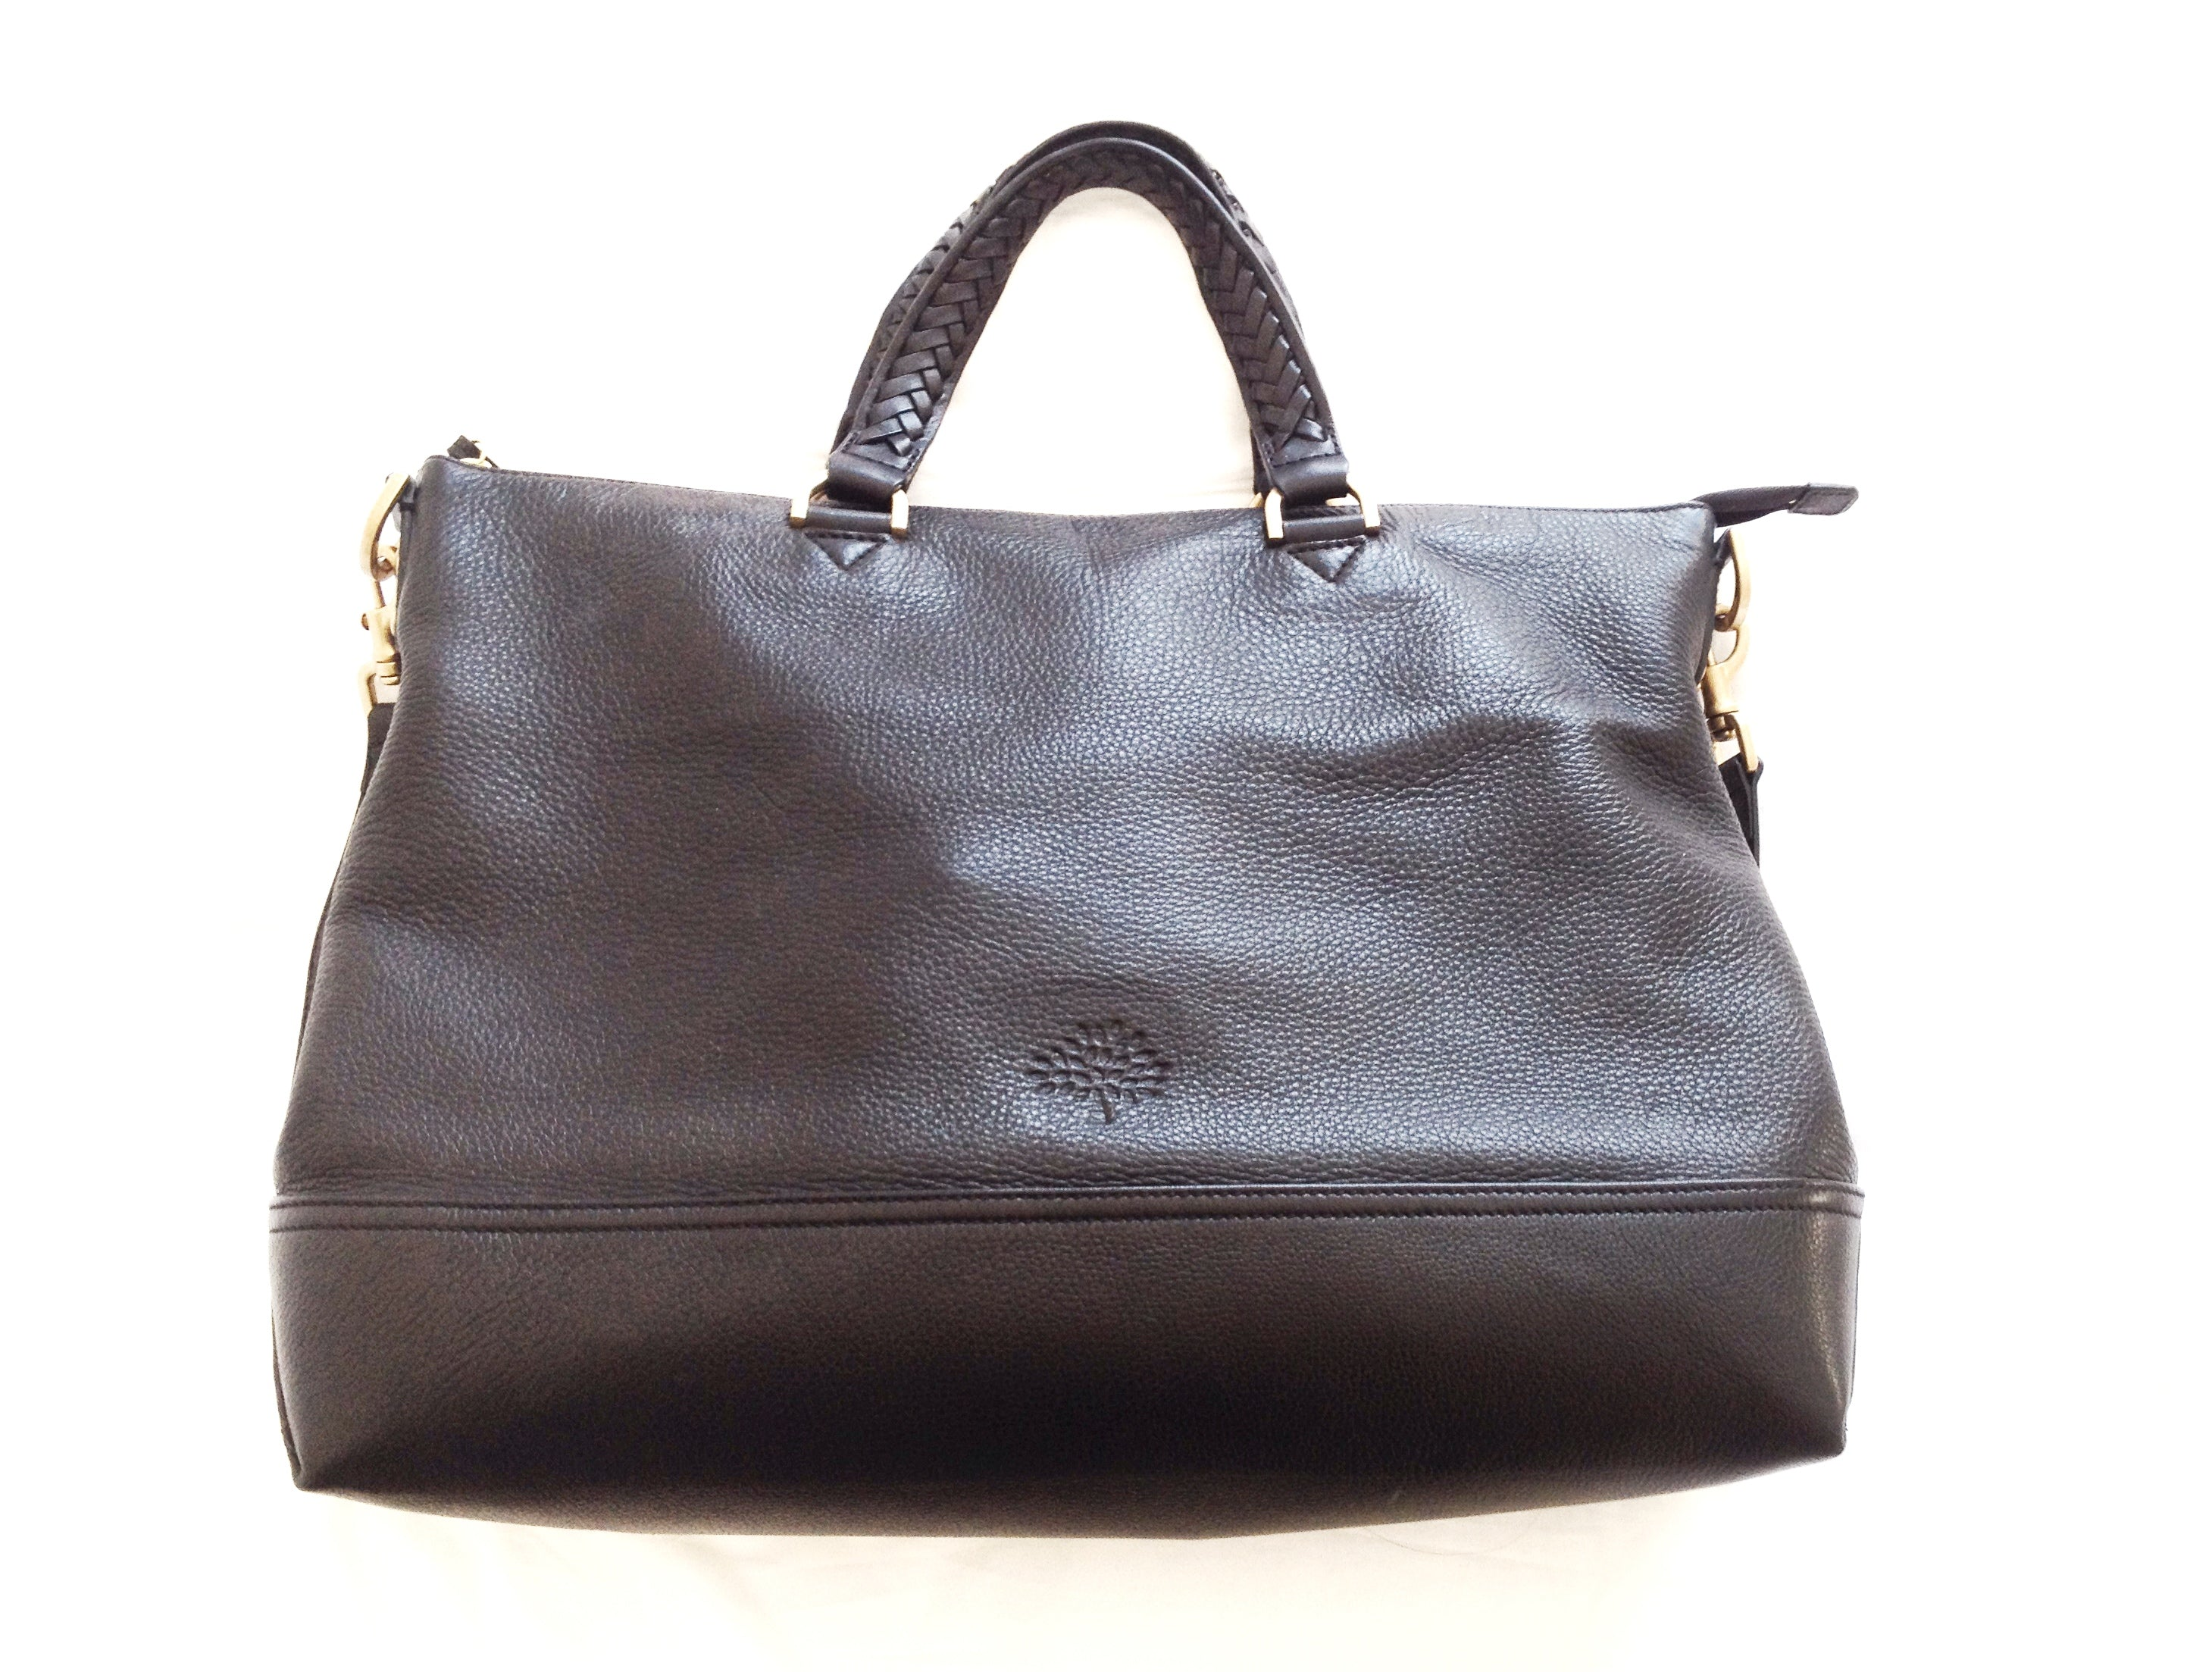 Stephs mulberry Effie tote hanabag